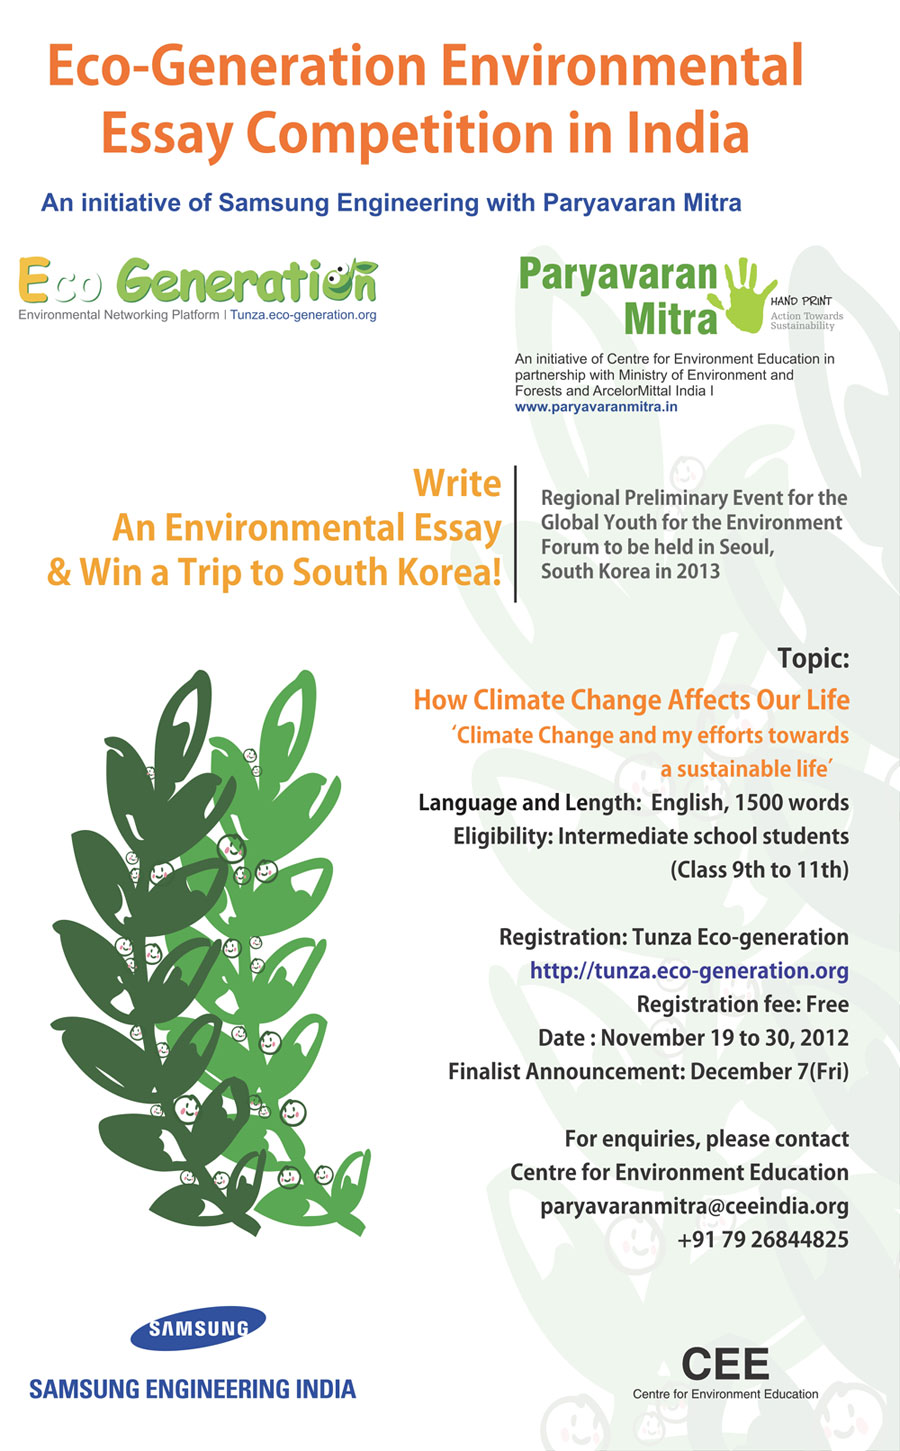 environmental essay competition in essay junior  eco generation environmental essay competition in an initiative of samsung engineering parayavaran